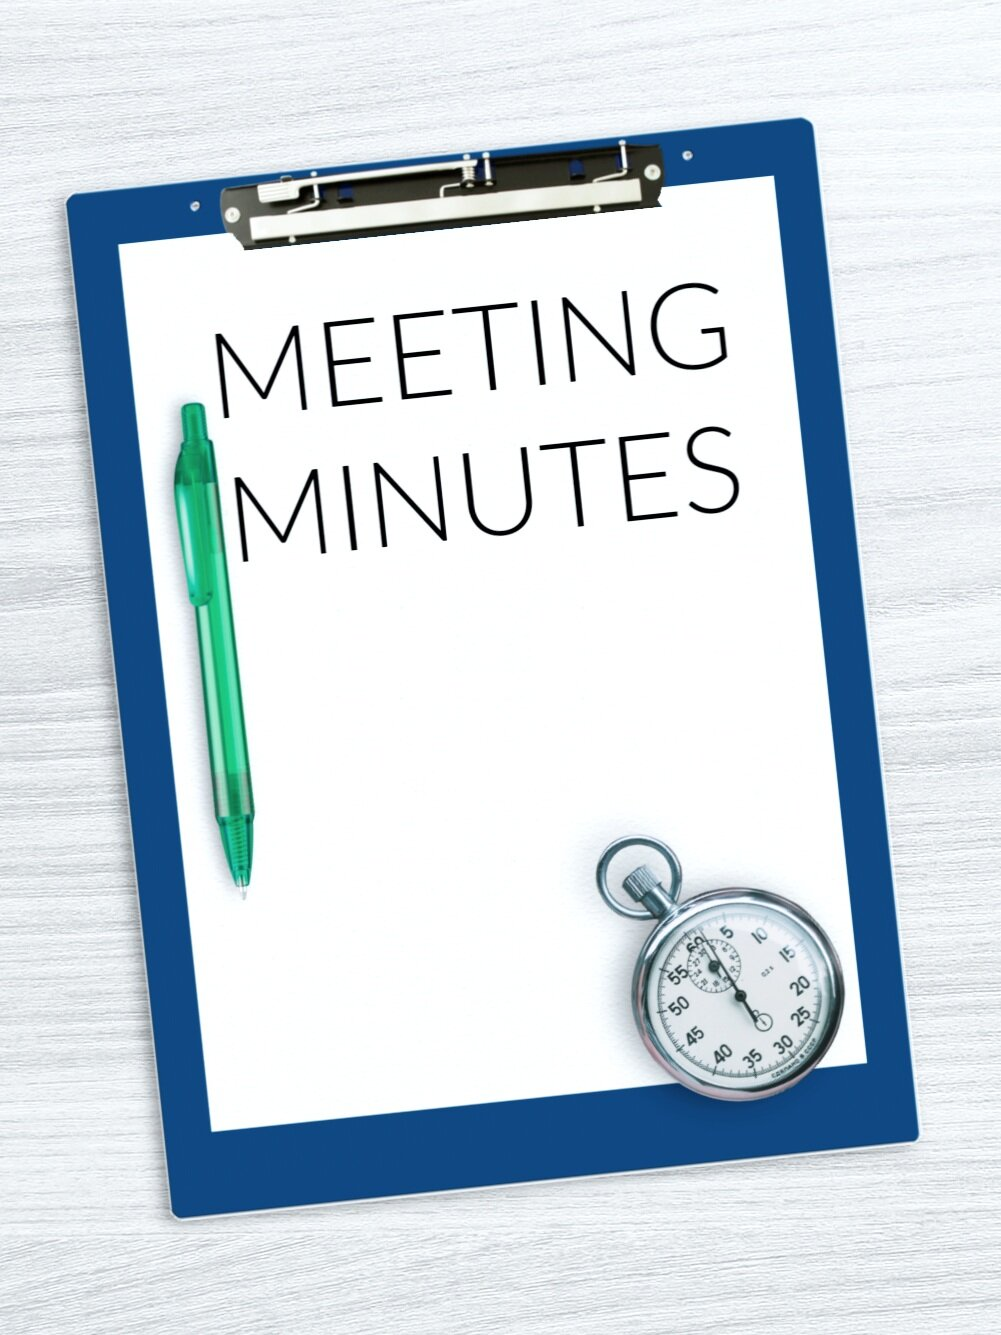 View our Joint Vestry minutes